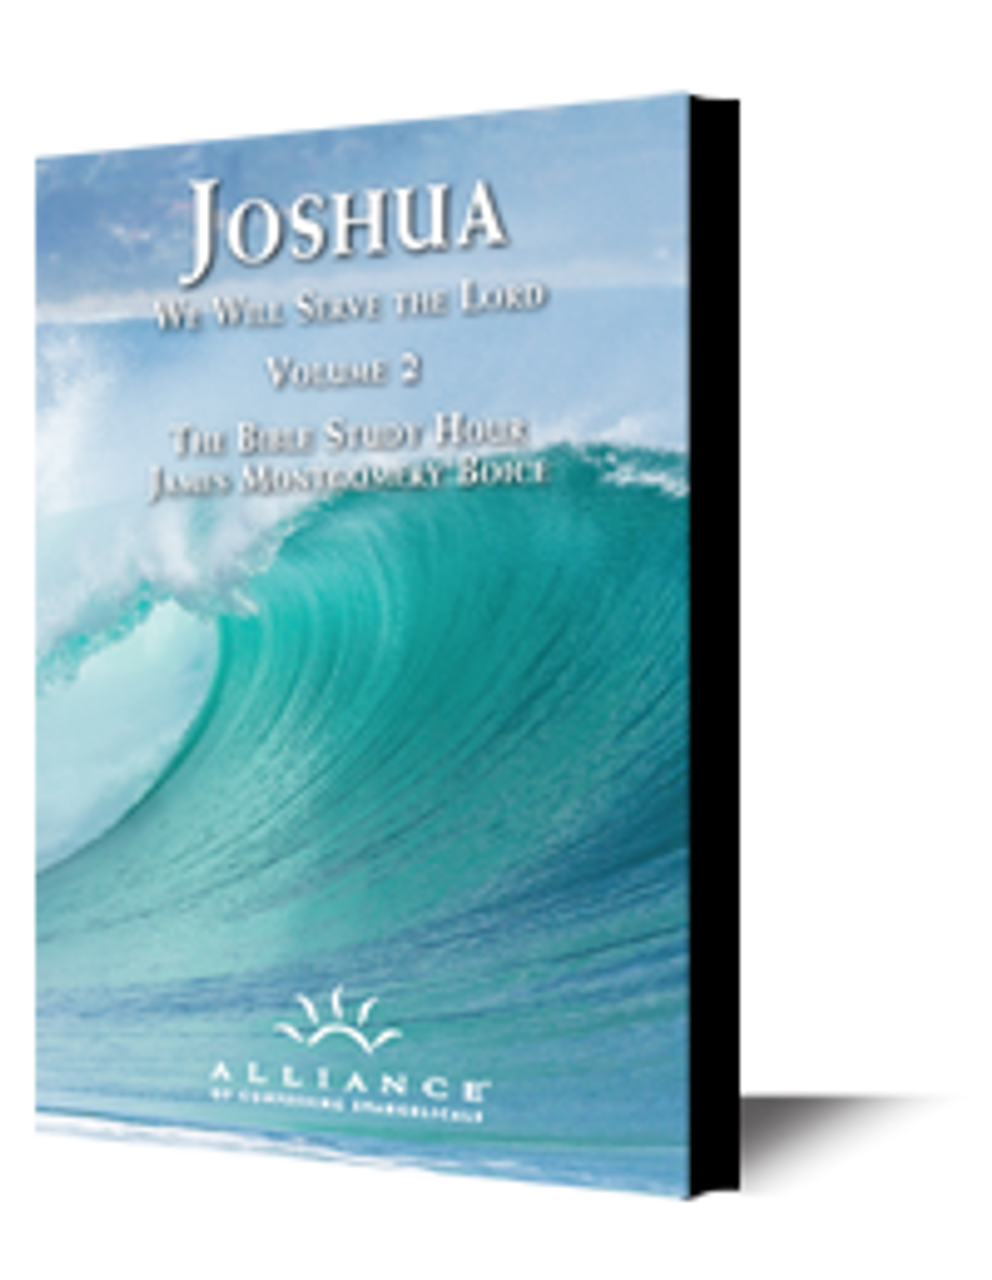 Joshua, Volume 2 (CD Set)